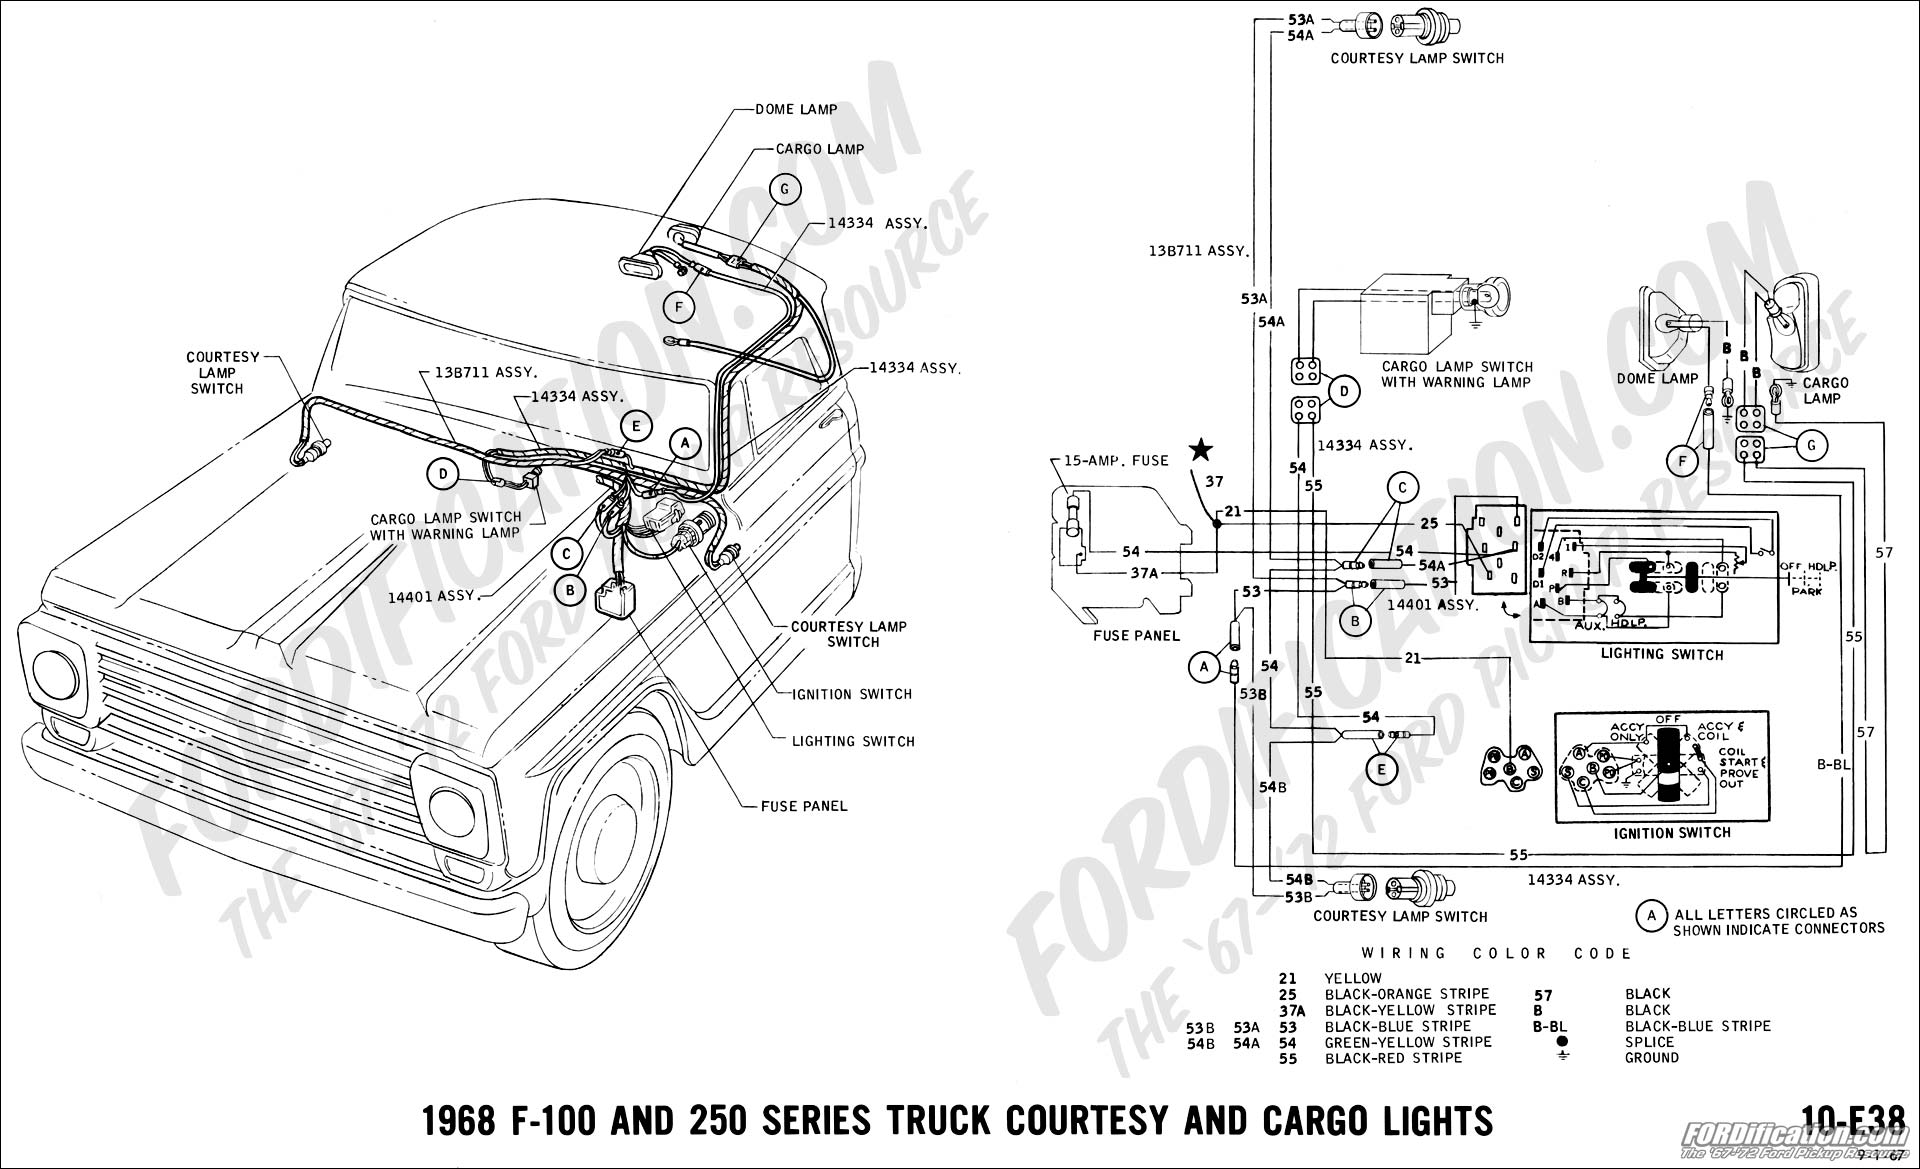 68 40 ford truck technical drawings and schematics section h wiring 1971 ford f250 wiring diagram at readyjetset.co